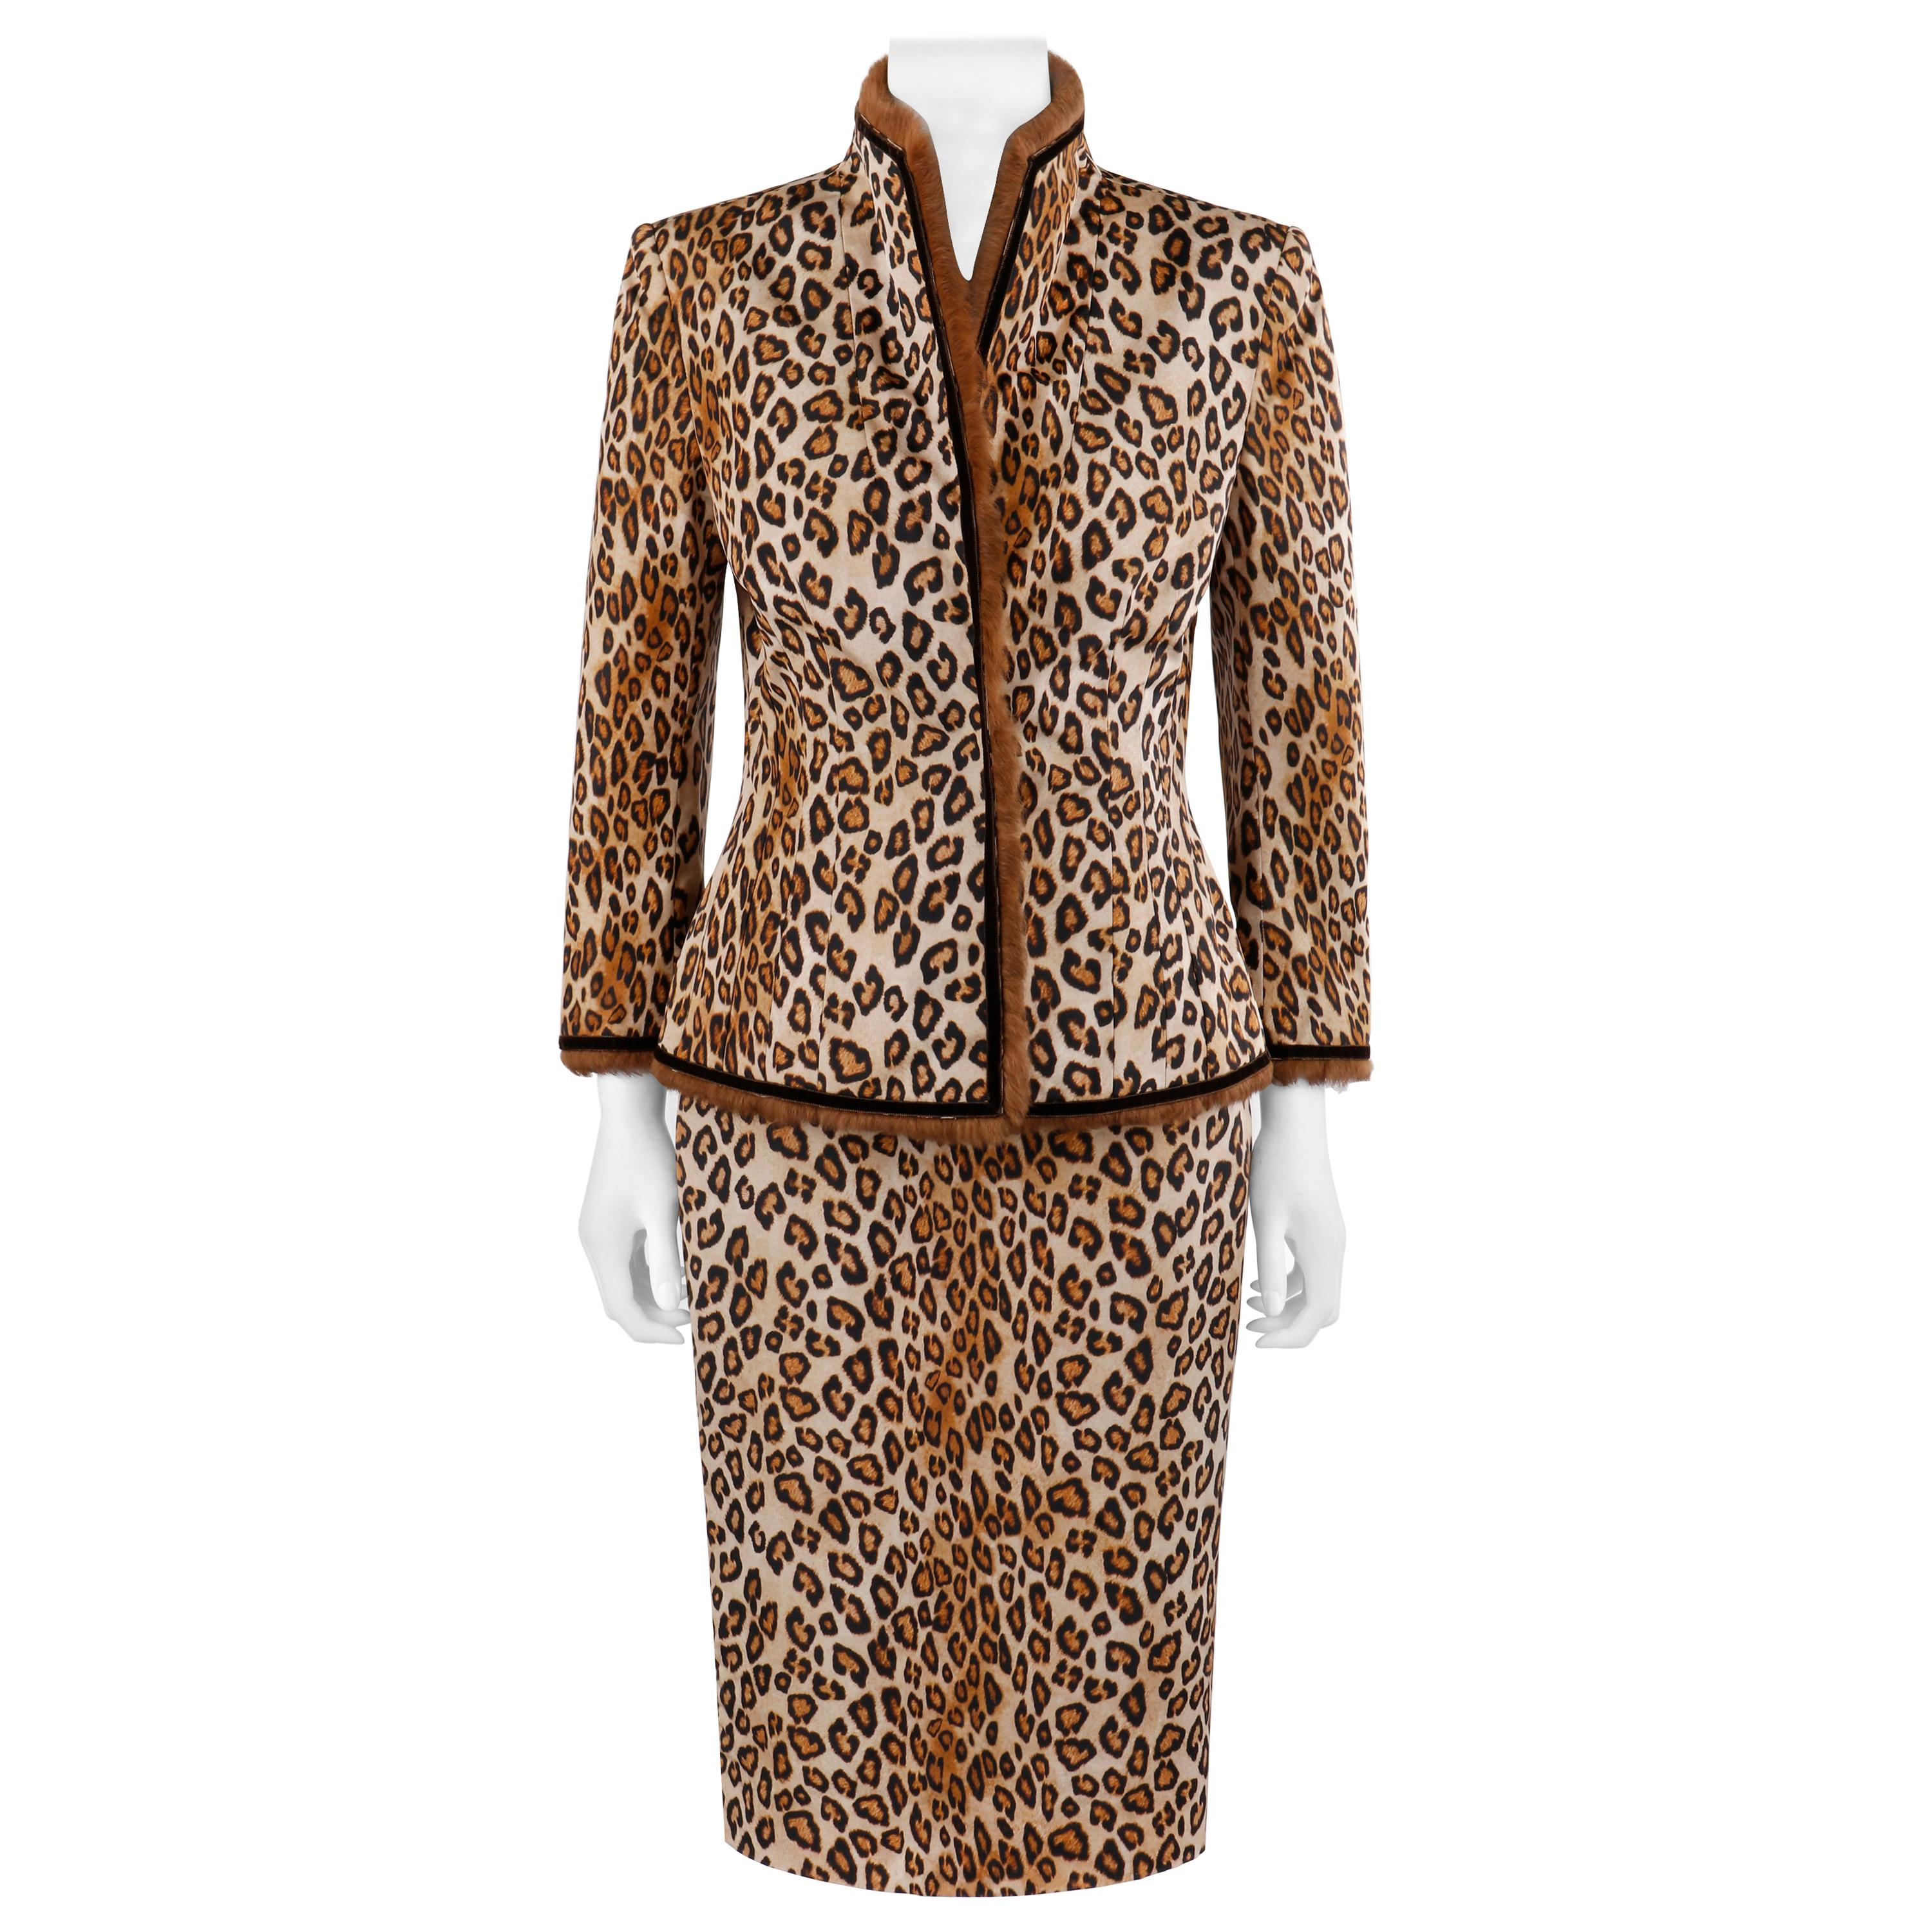 """Alexander McQueen A/W 2005 """"The Man Who Knew Too Much"""" Leopard Fur Jacket Skirt"""